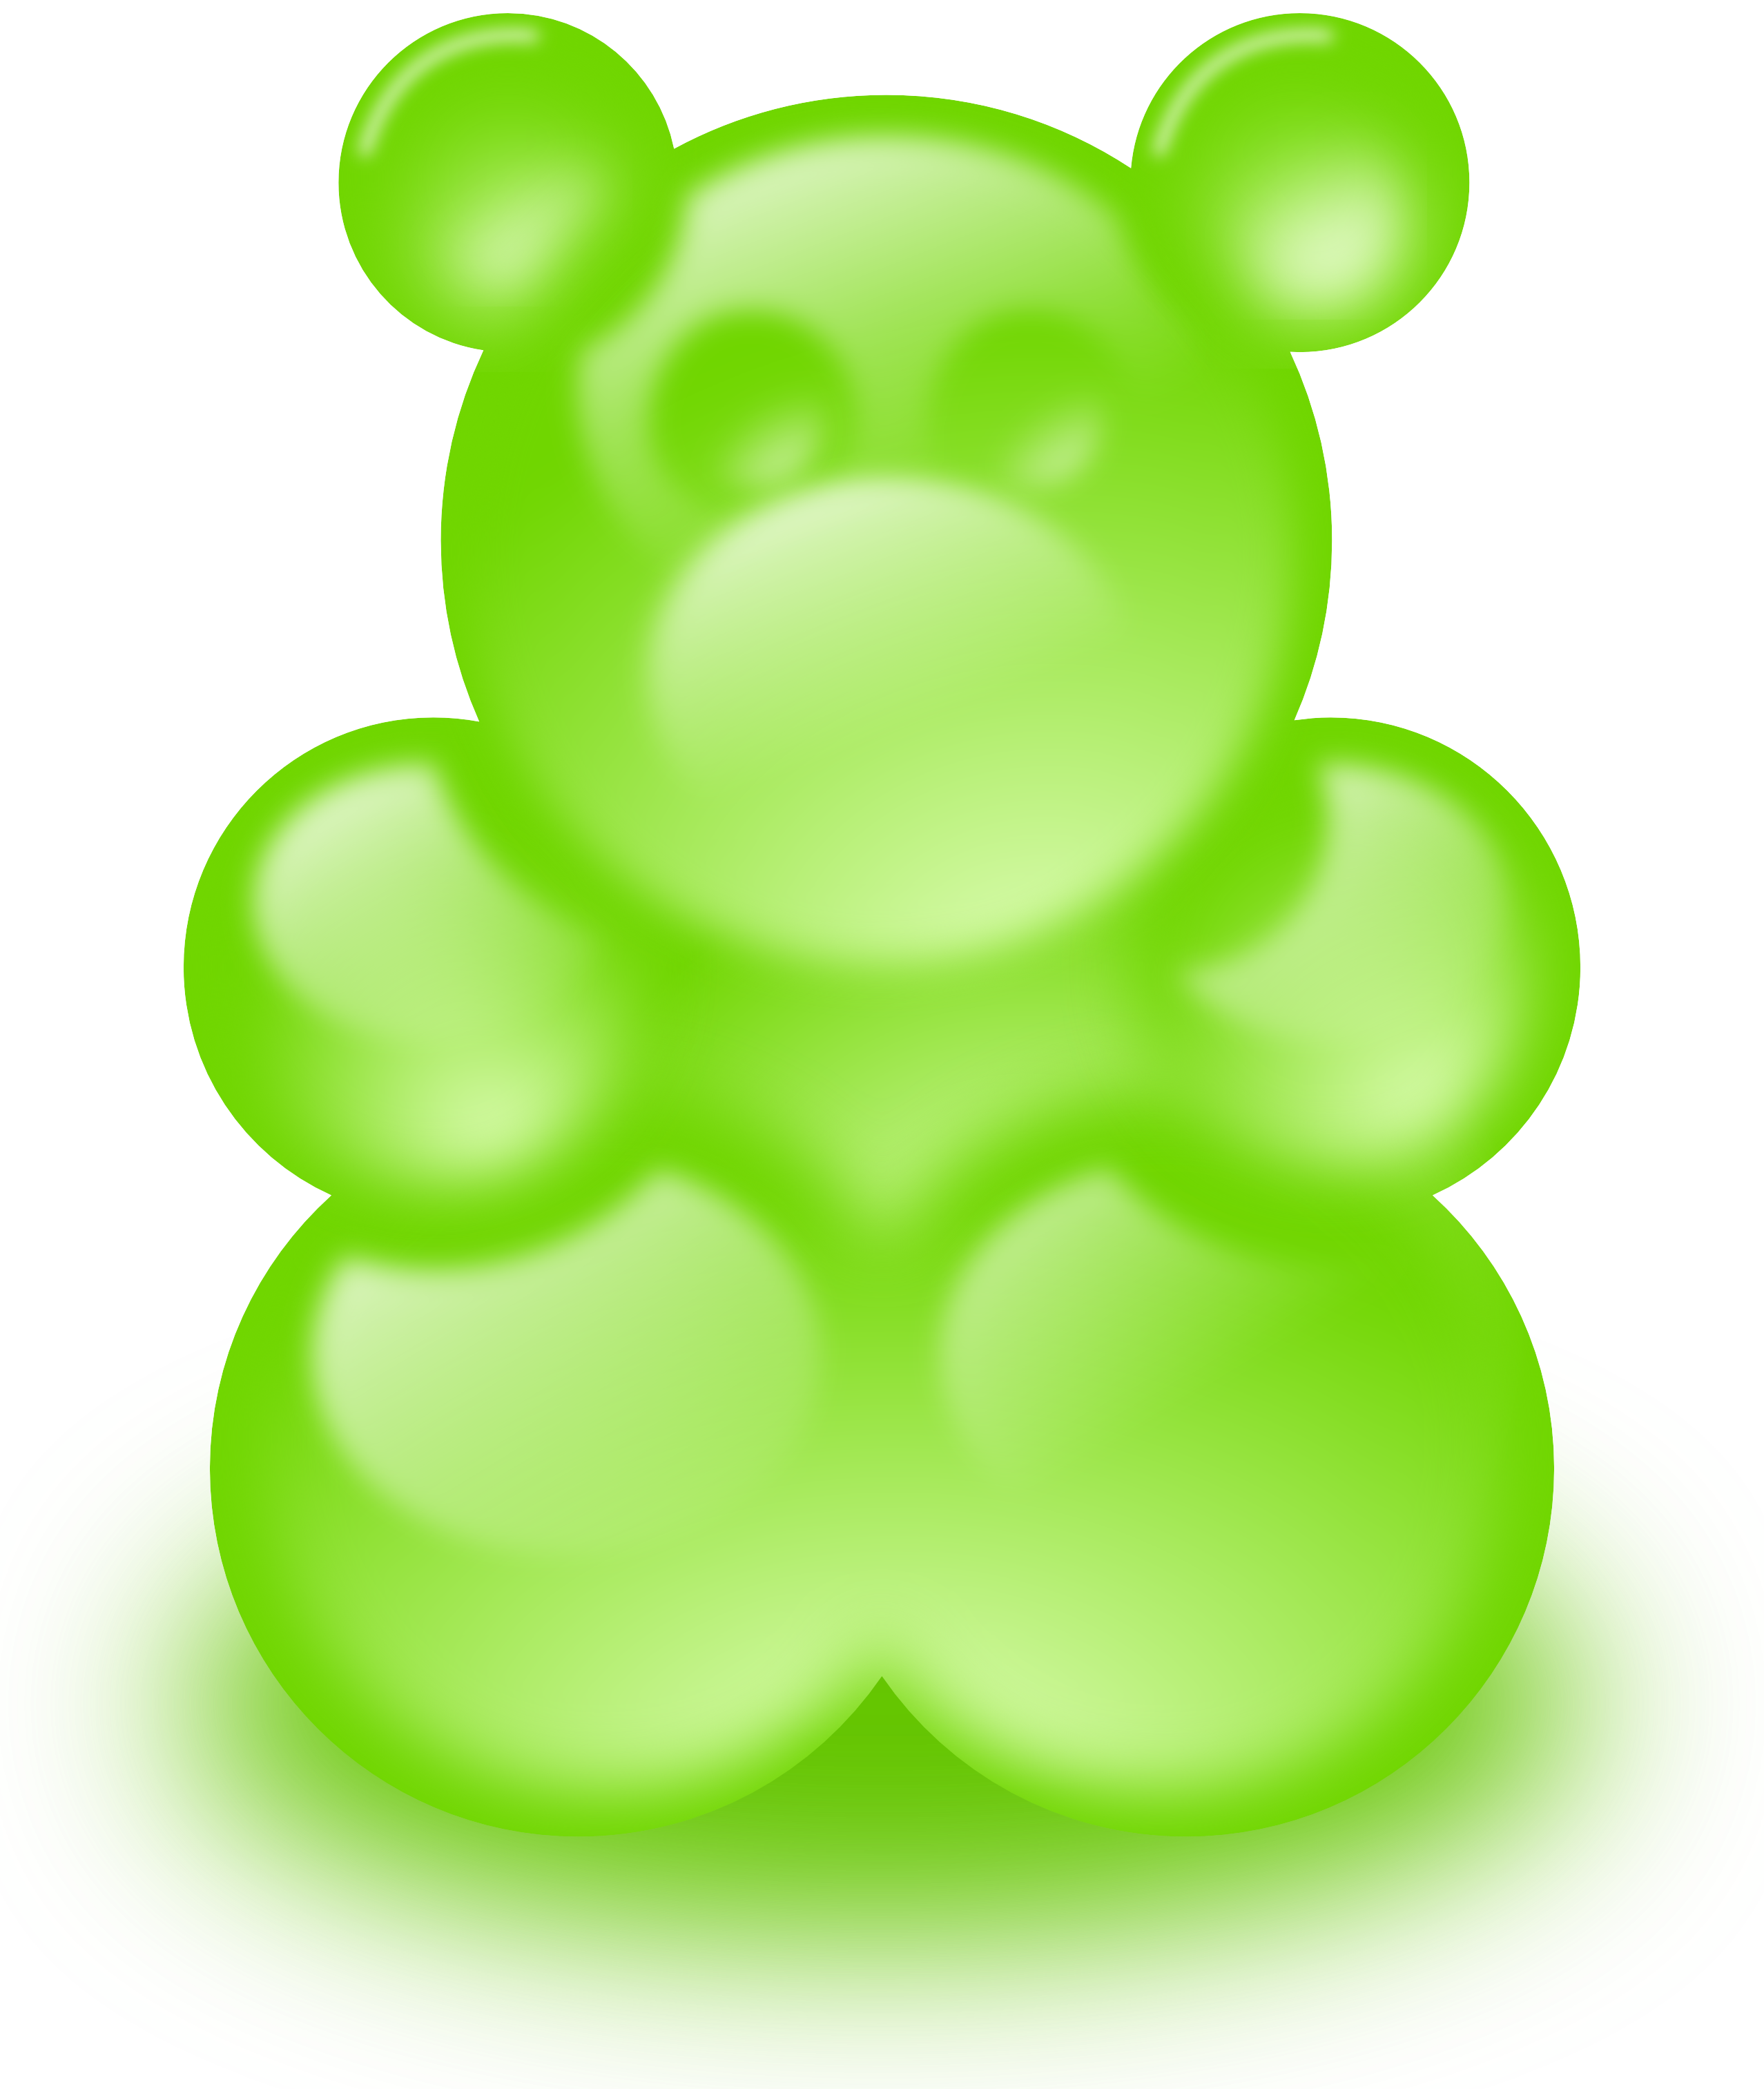 Gummy bears clipart.